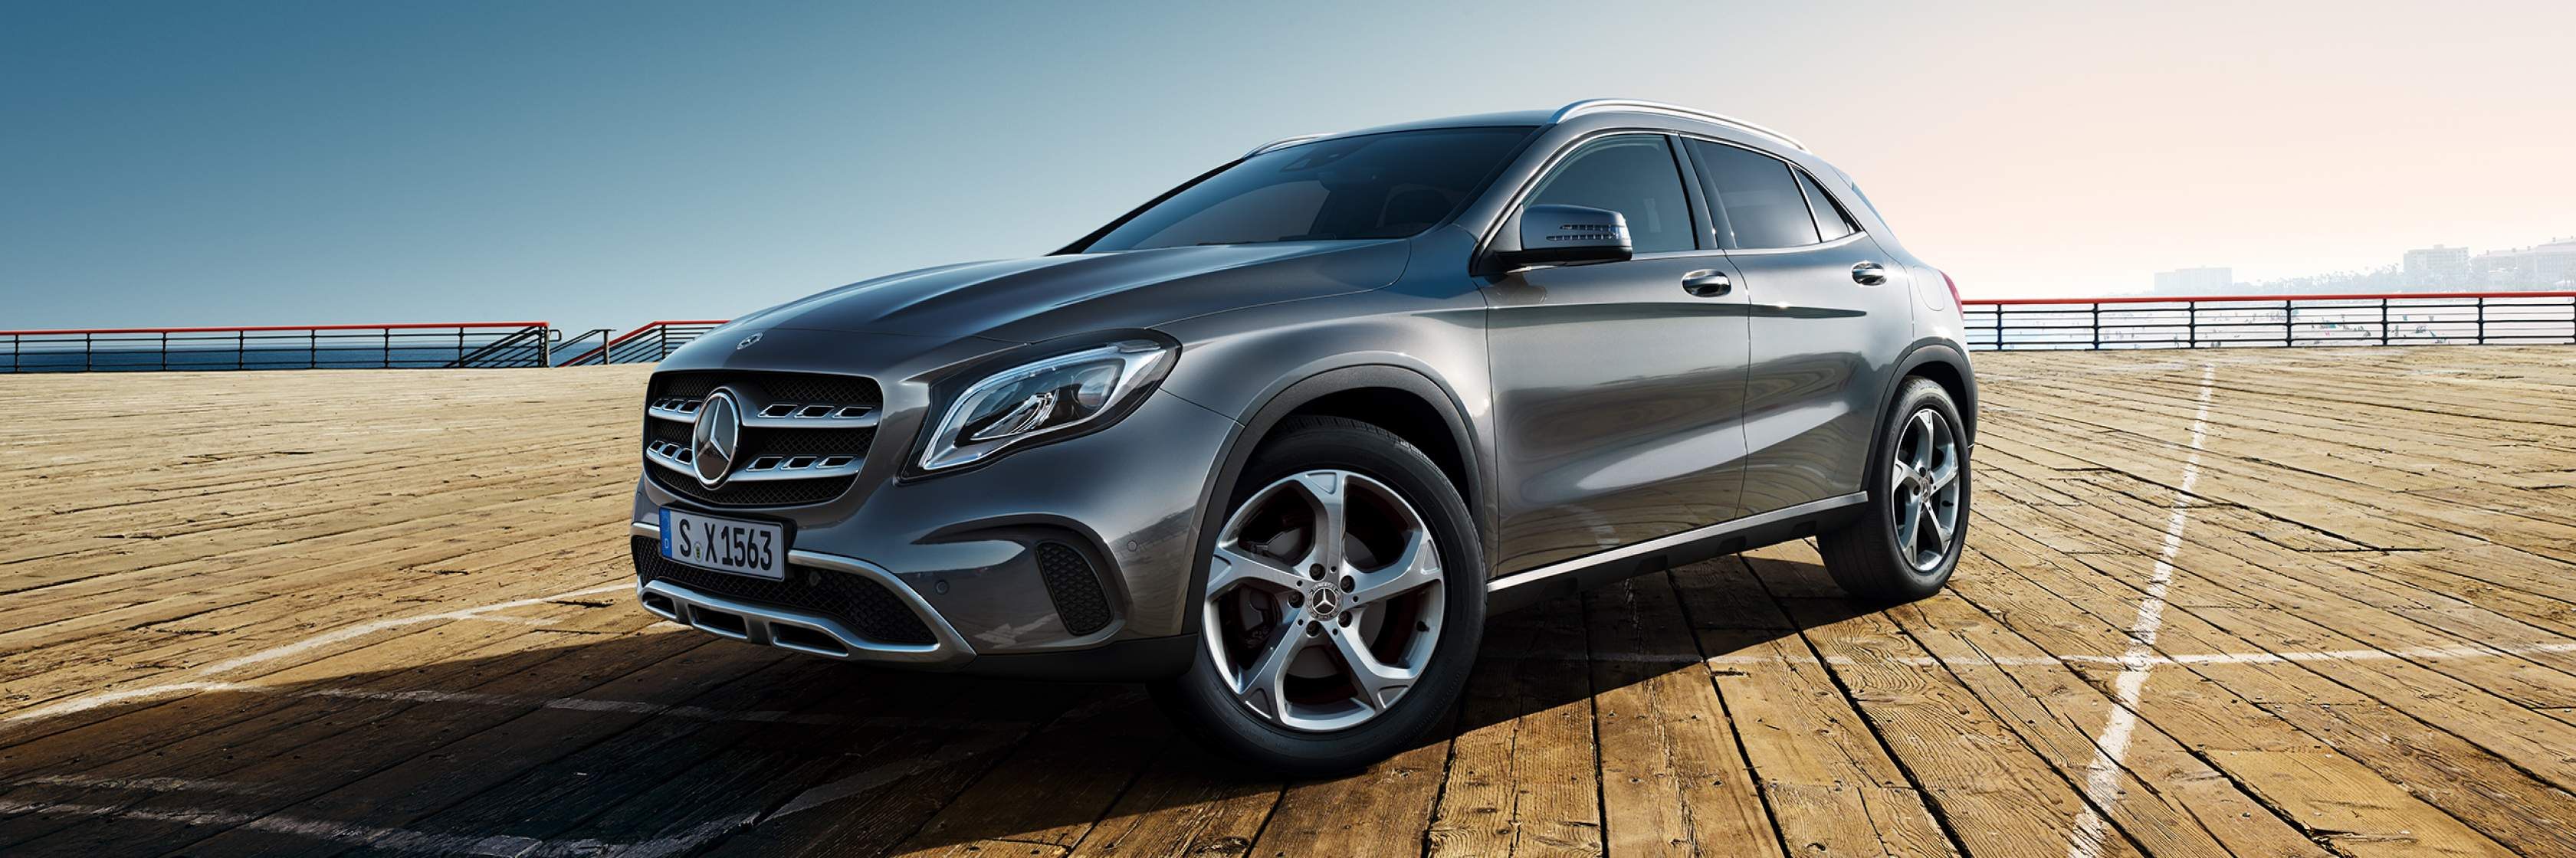 Ціна Mercedes–Benz GLA